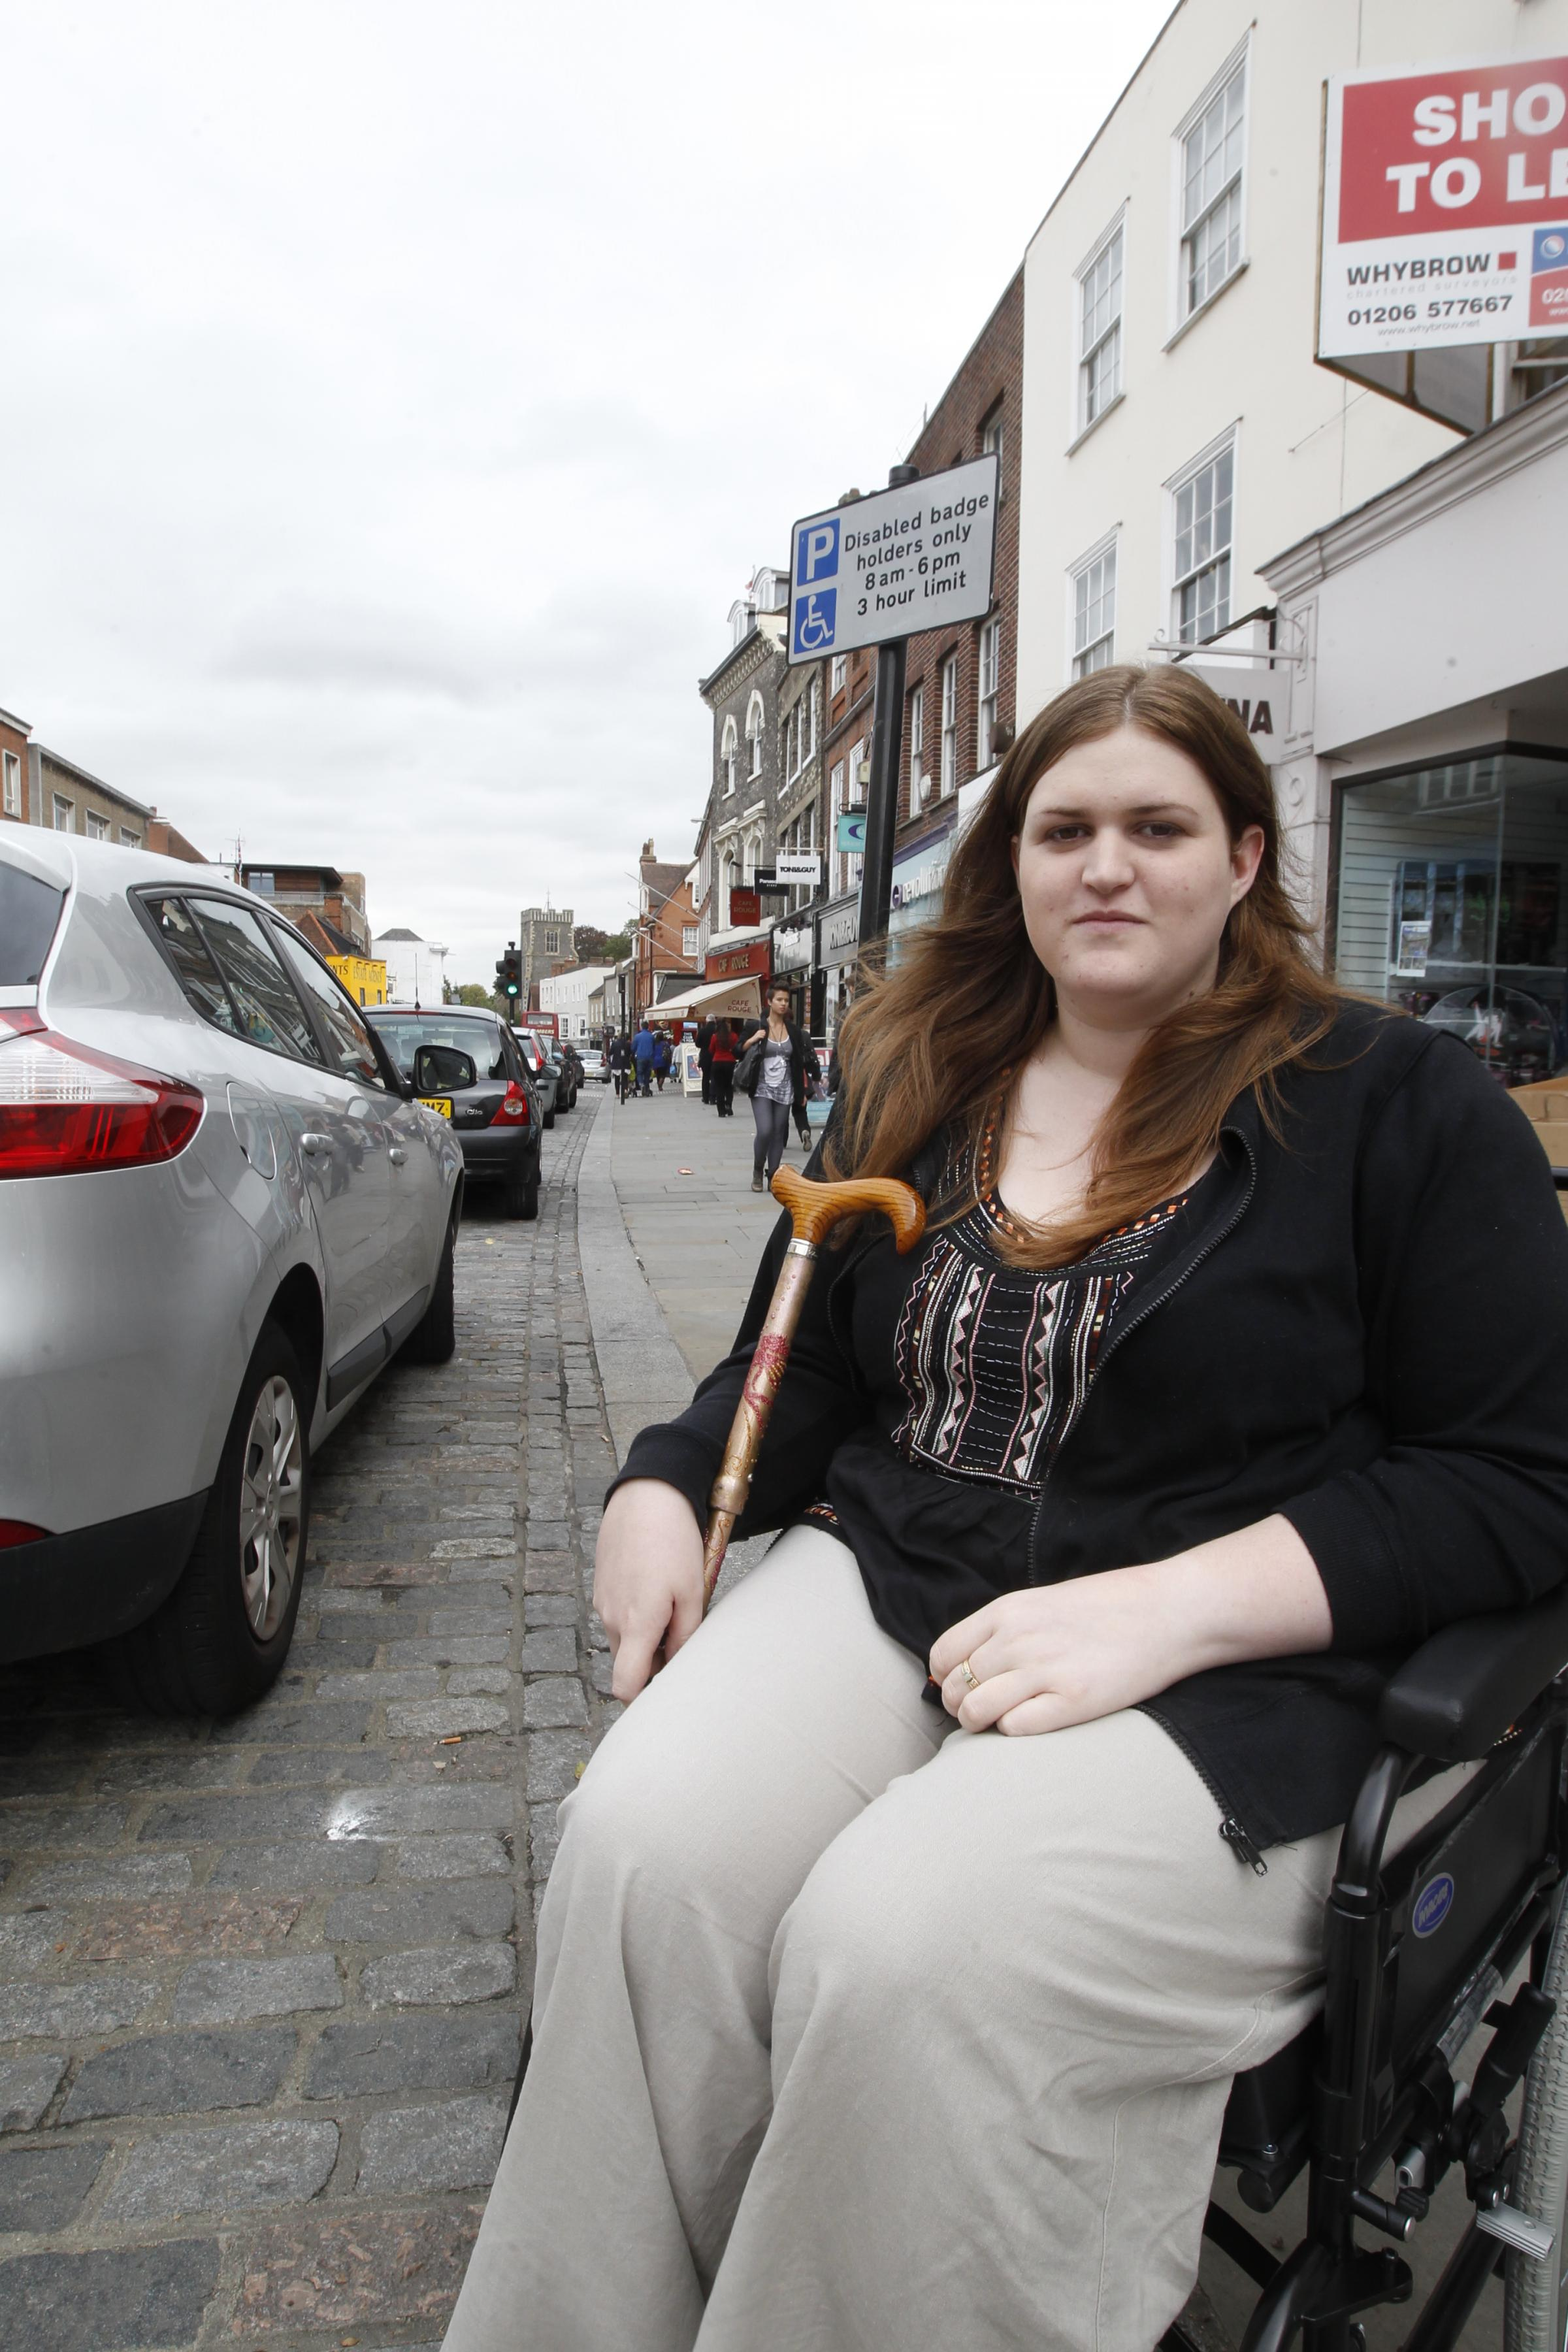 Disabled campaigners lose High Street car ban legal battle